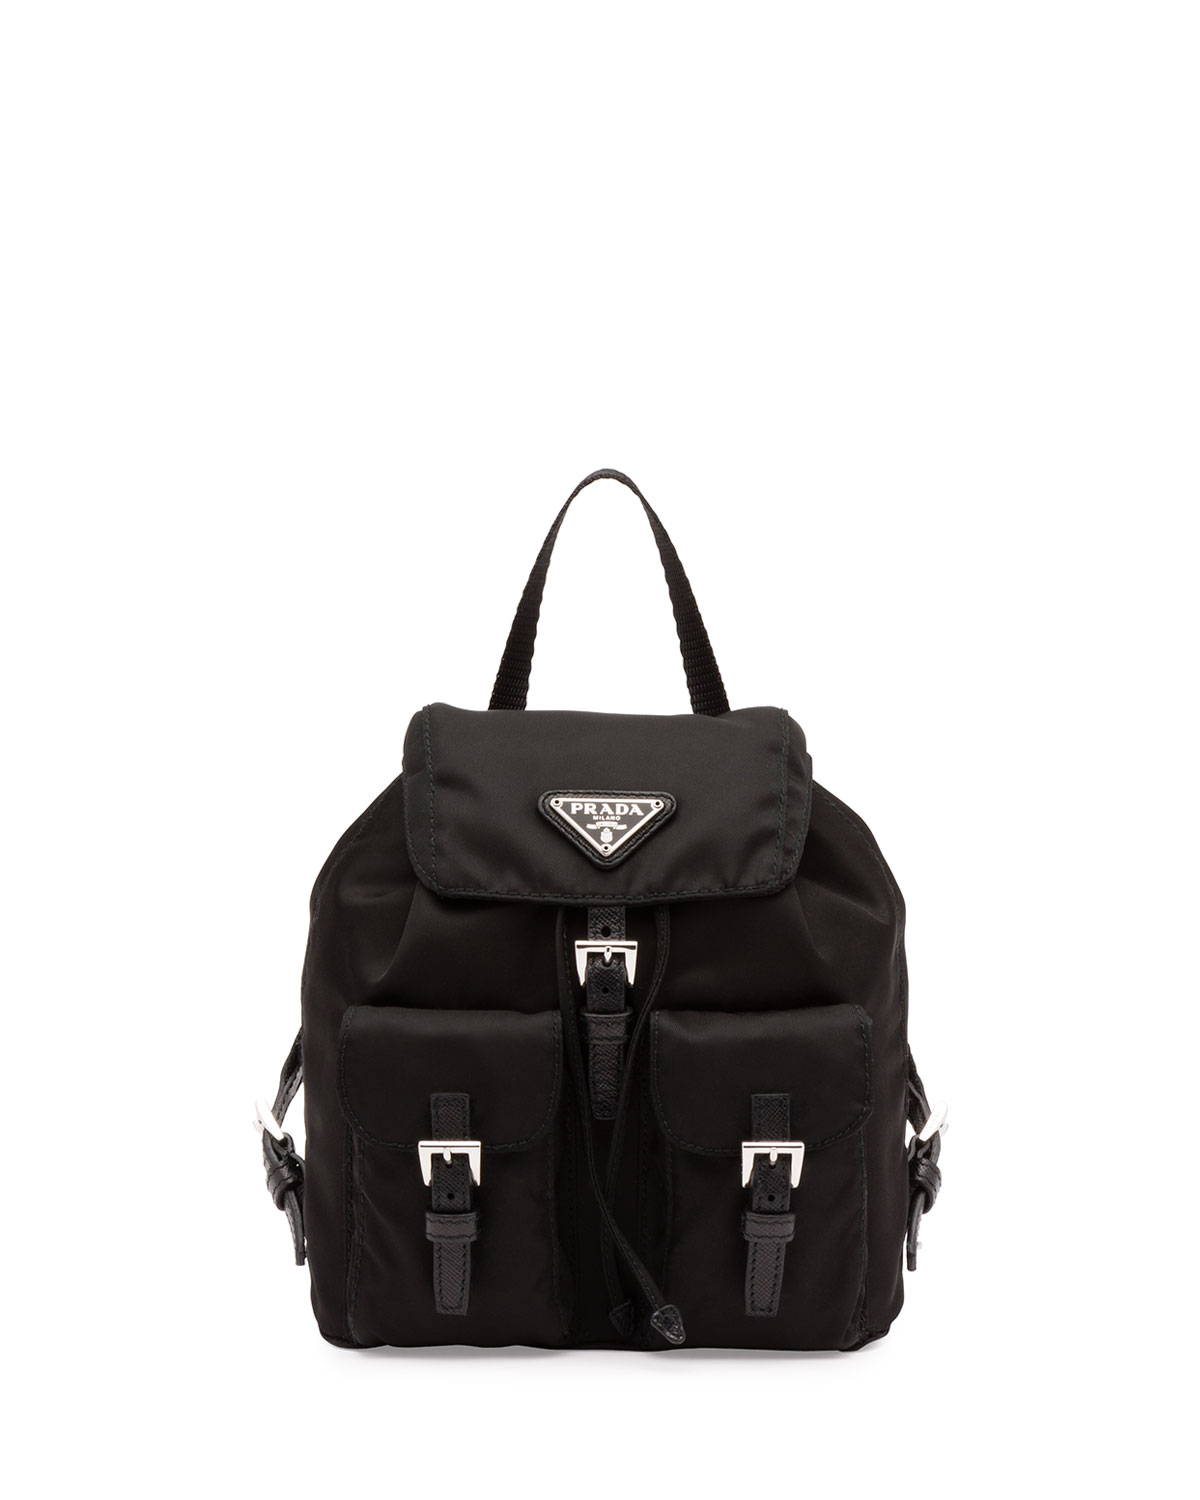 e16ec0ed9e17 Prada Vela Mini Crossbody Backpack Bag, Black (Nero) | Neiman Marcus